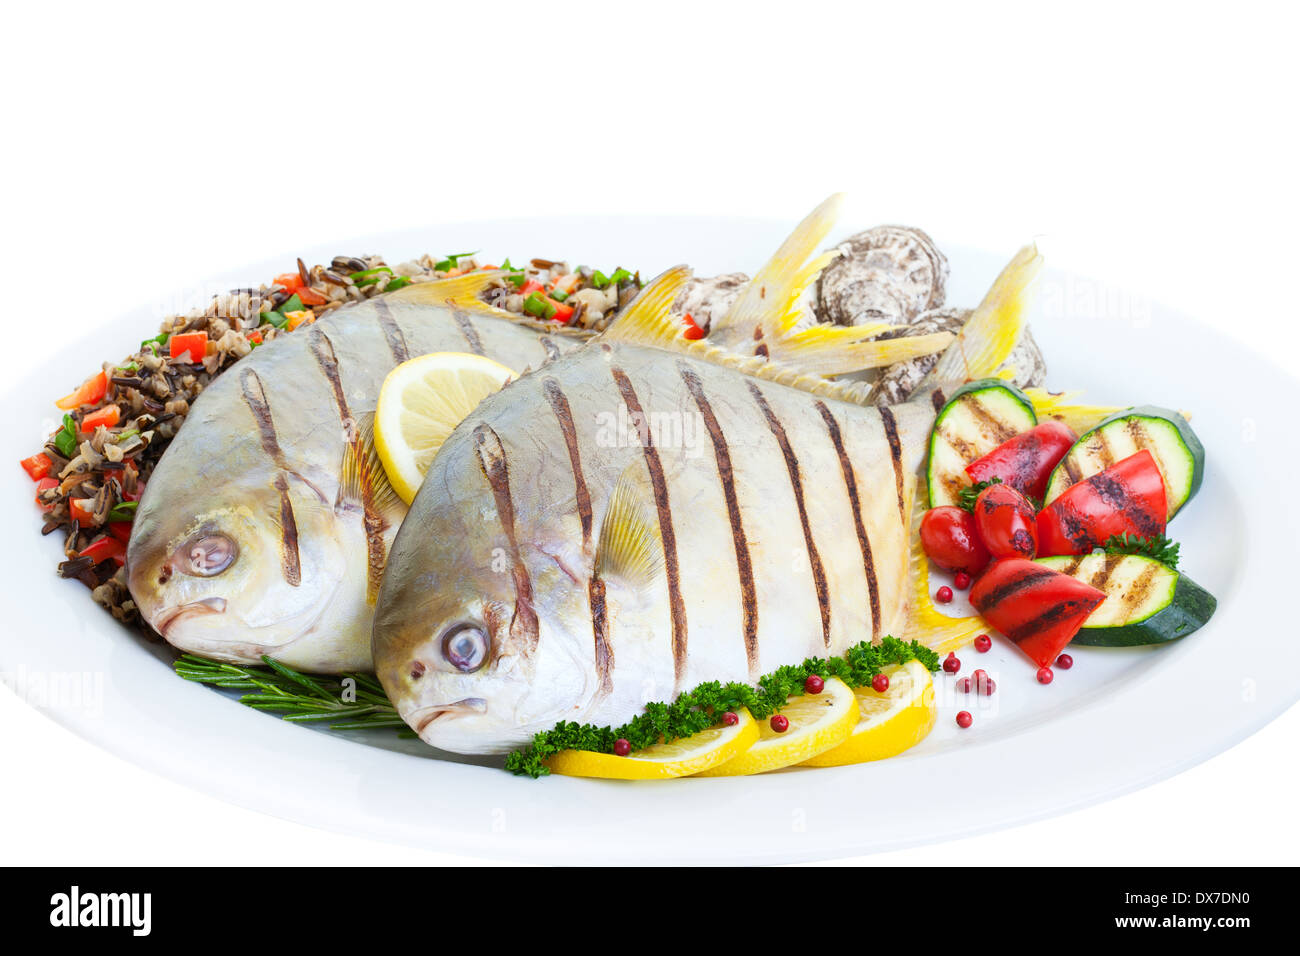 Grilled Pompano fish with wild rice ,vegetables and oysters on a white background. - Stock Image